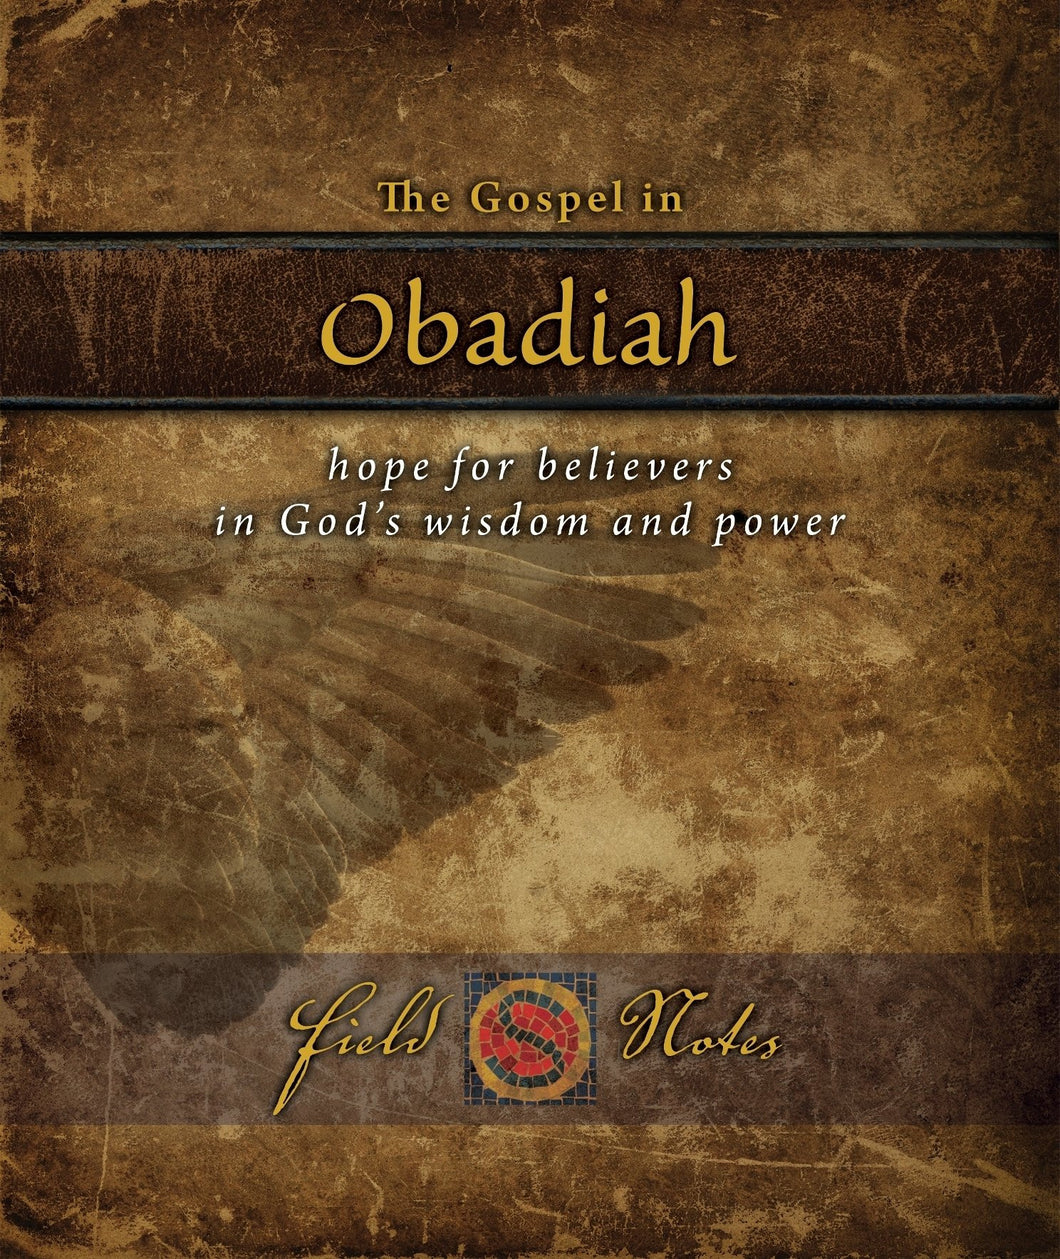 The Gospel in Obadiah: Hope for believers in God's wisdom and power